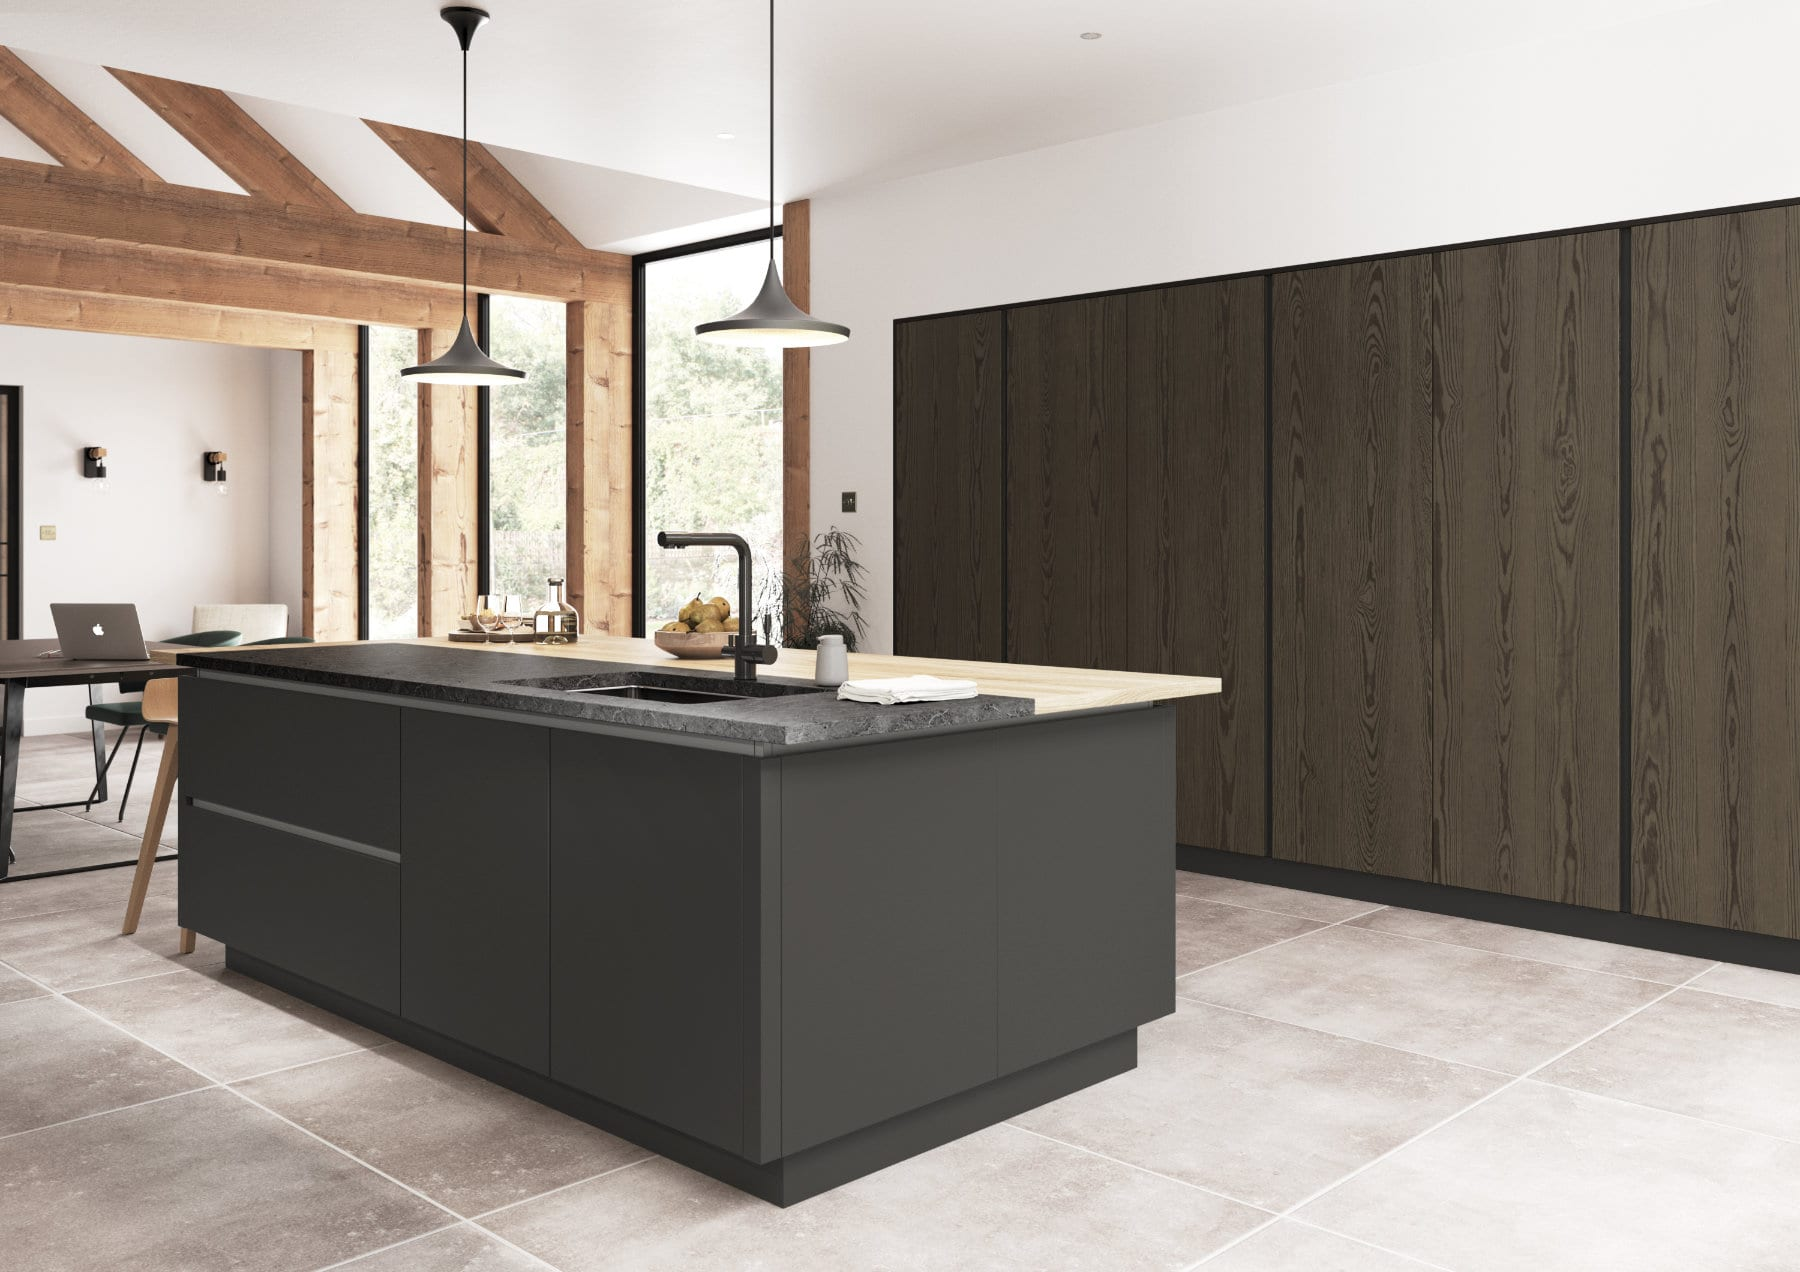 Kelso Truffle Grey And Zola Matte Graphite Cameo 6 Rgb | Qudaus Living | Modern Kitchens Sutton Coldfield